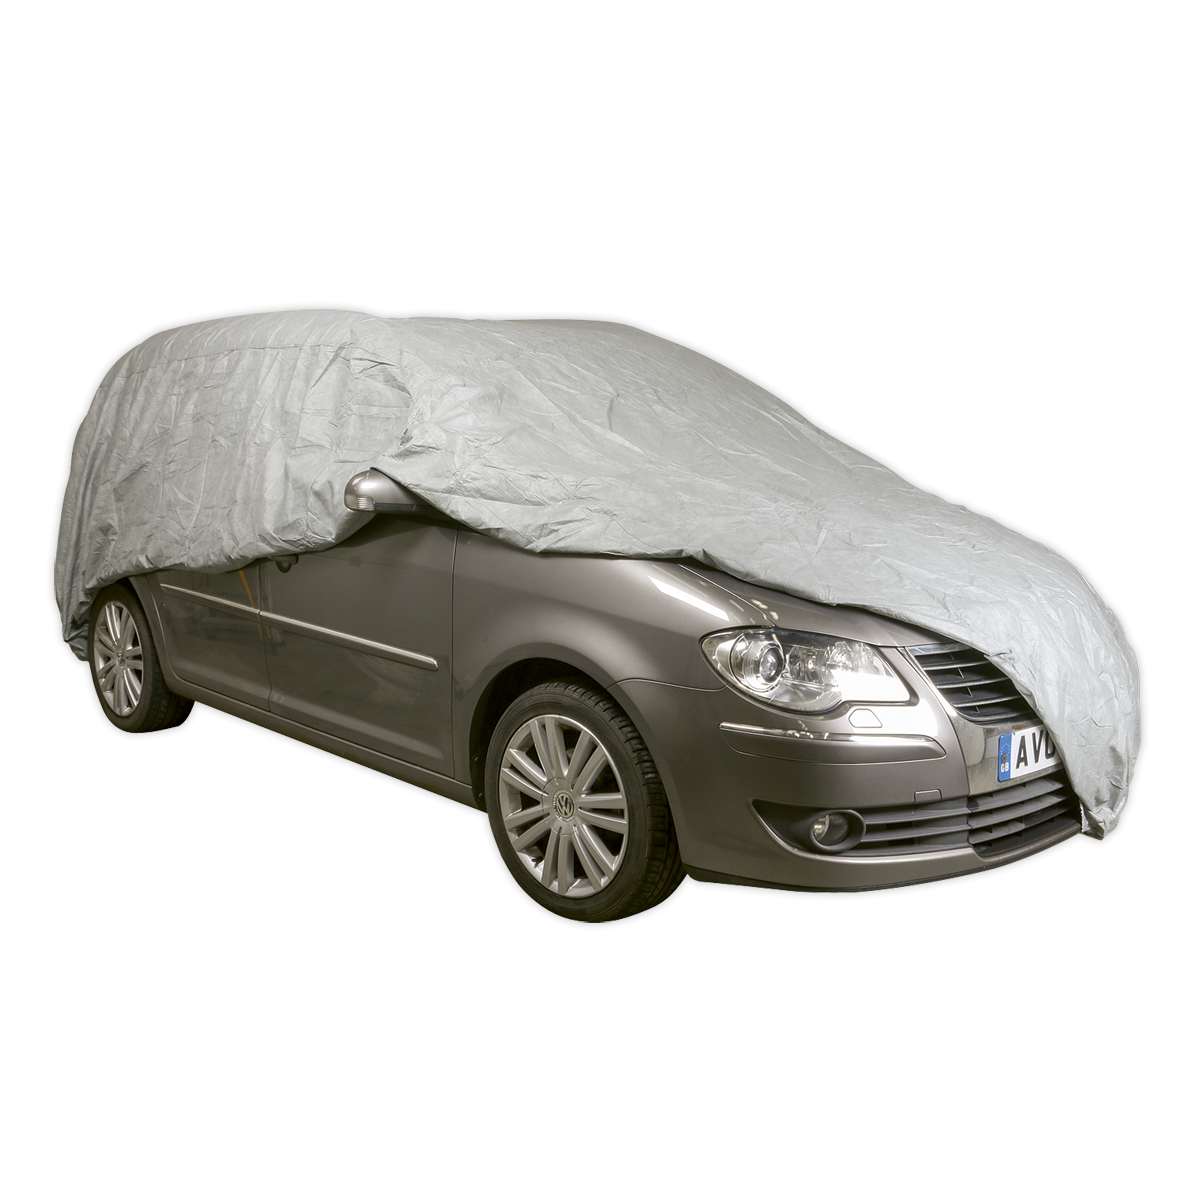 All Seasons Car Cover 3-Layer - Extra Extra Large